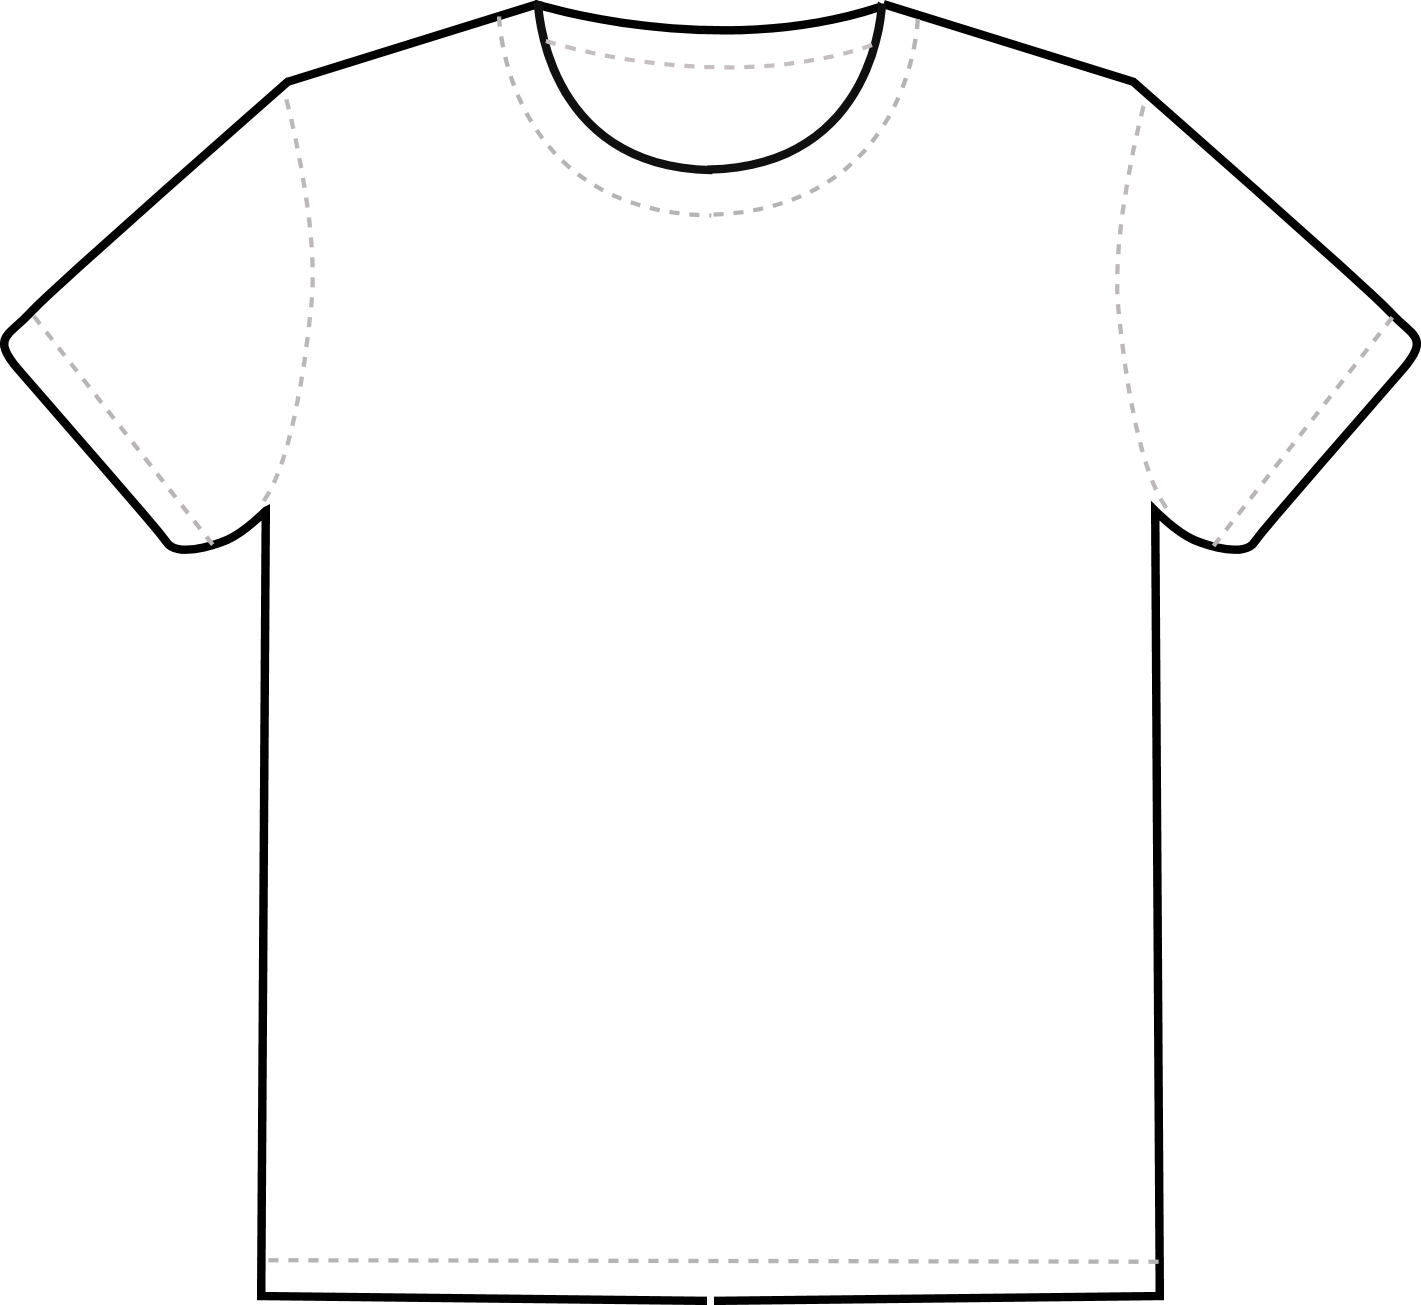 T Shirt Design Free Images